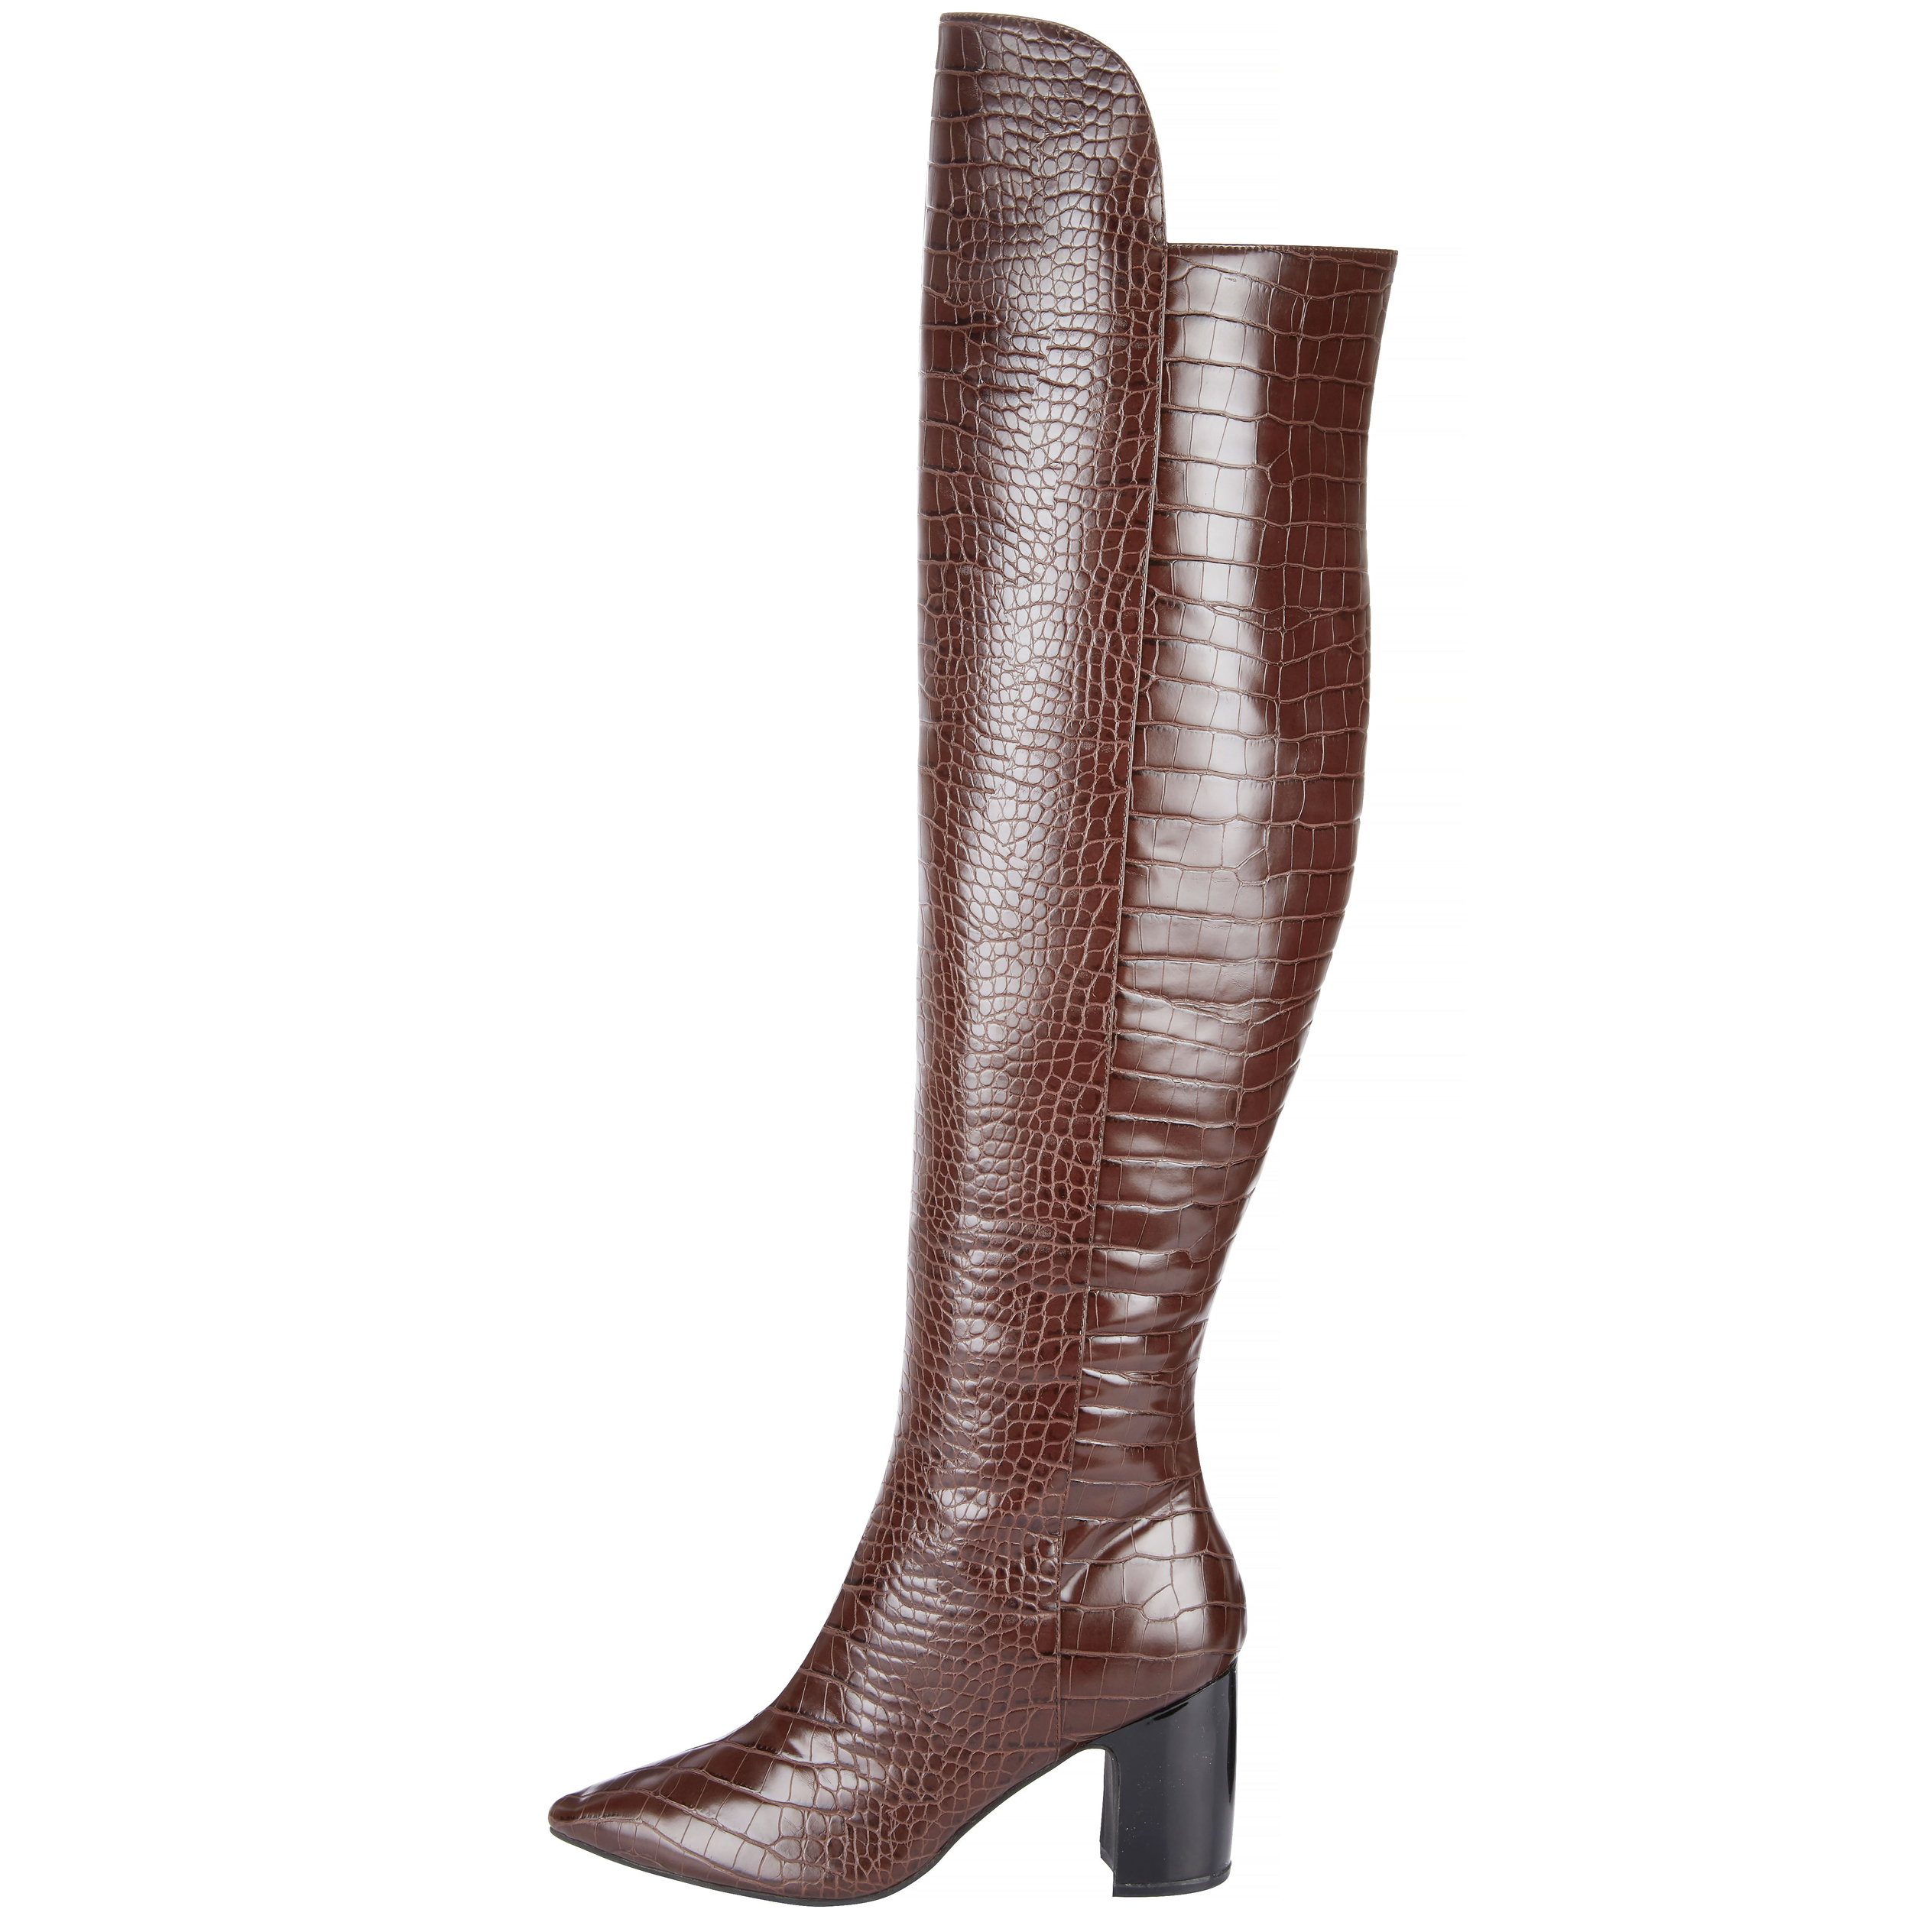 Very Croc Knee Boots, £50/AED225.69